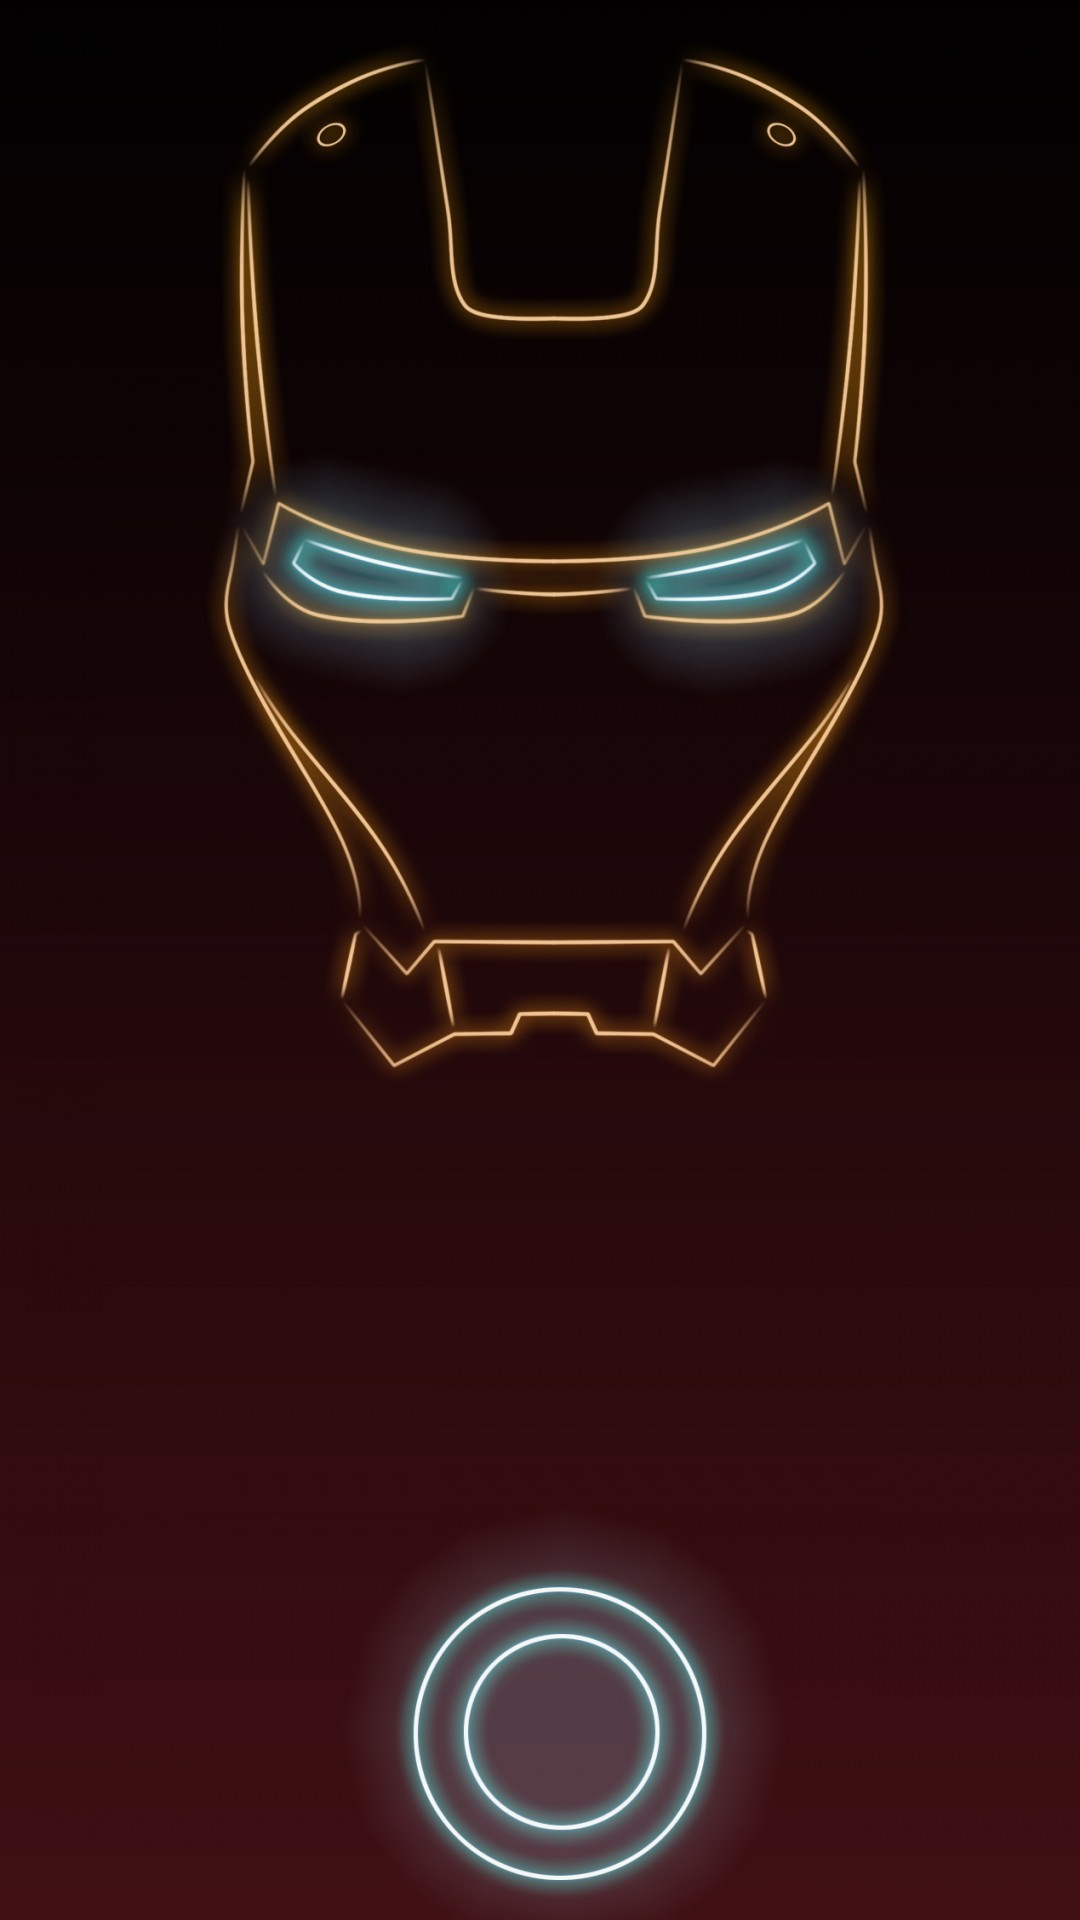 1080x1920 HD Wallpapers Iron Man Wallpaper | HD Wallpapers | Pinterest | Iron man  wallpaper, Hd wallpaper and Wallpaper